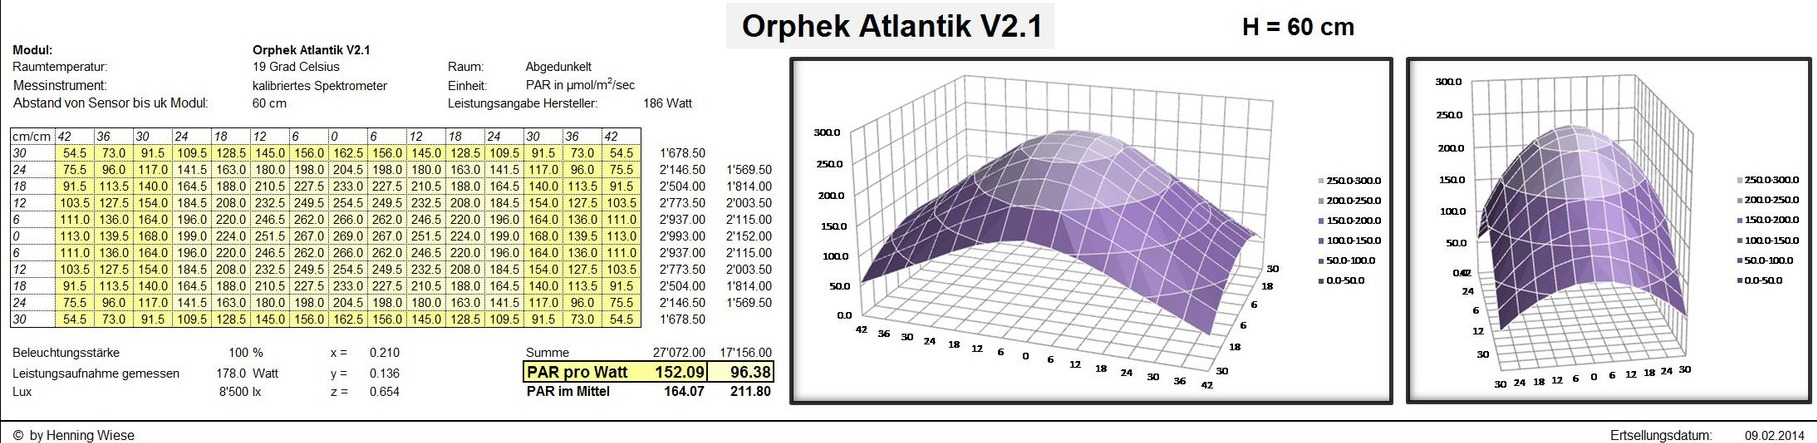 Orphek Atlantik V2.1 LED φωτιστικό-PAR MAP -PAR ανά Watt